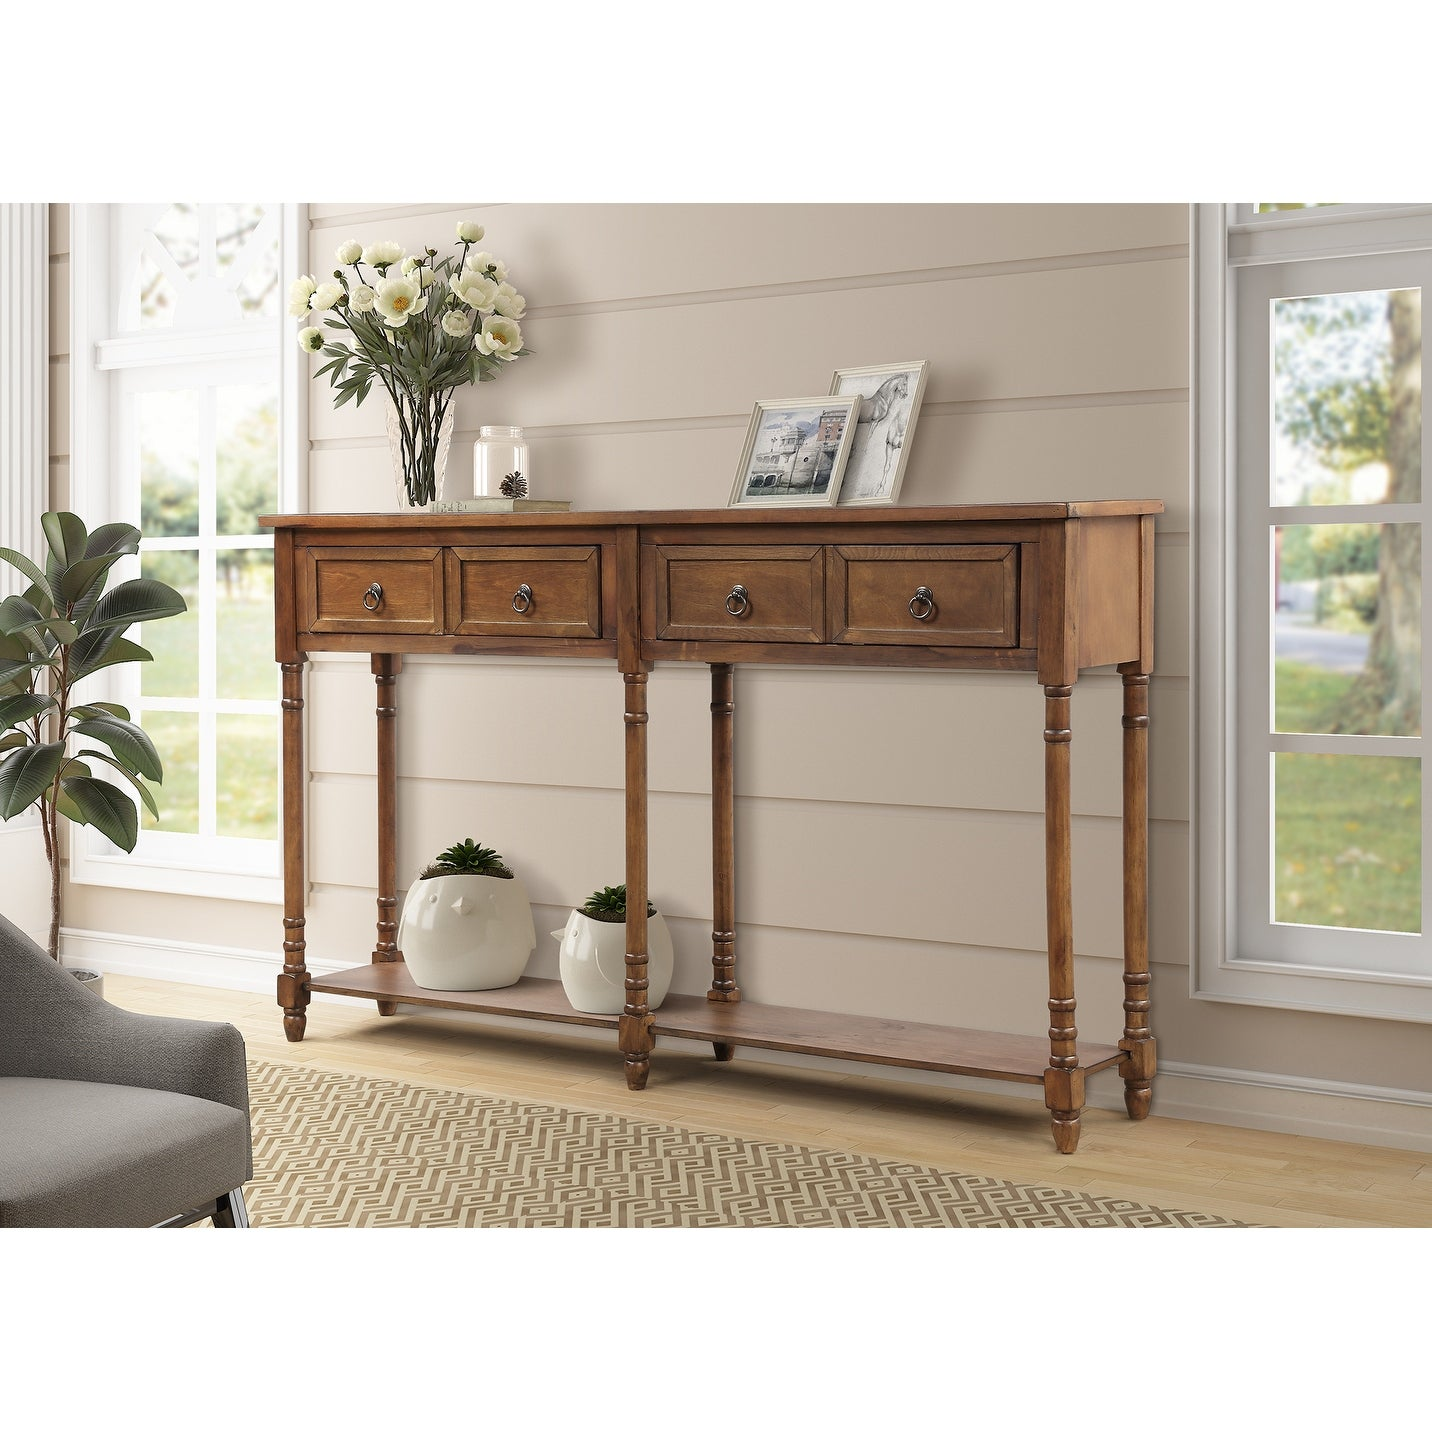 Picture of: Antique Walnut Wood Sofa Entryway Console Tables With 4 Drawers Antique Walnut On Sale Overstock 28739212